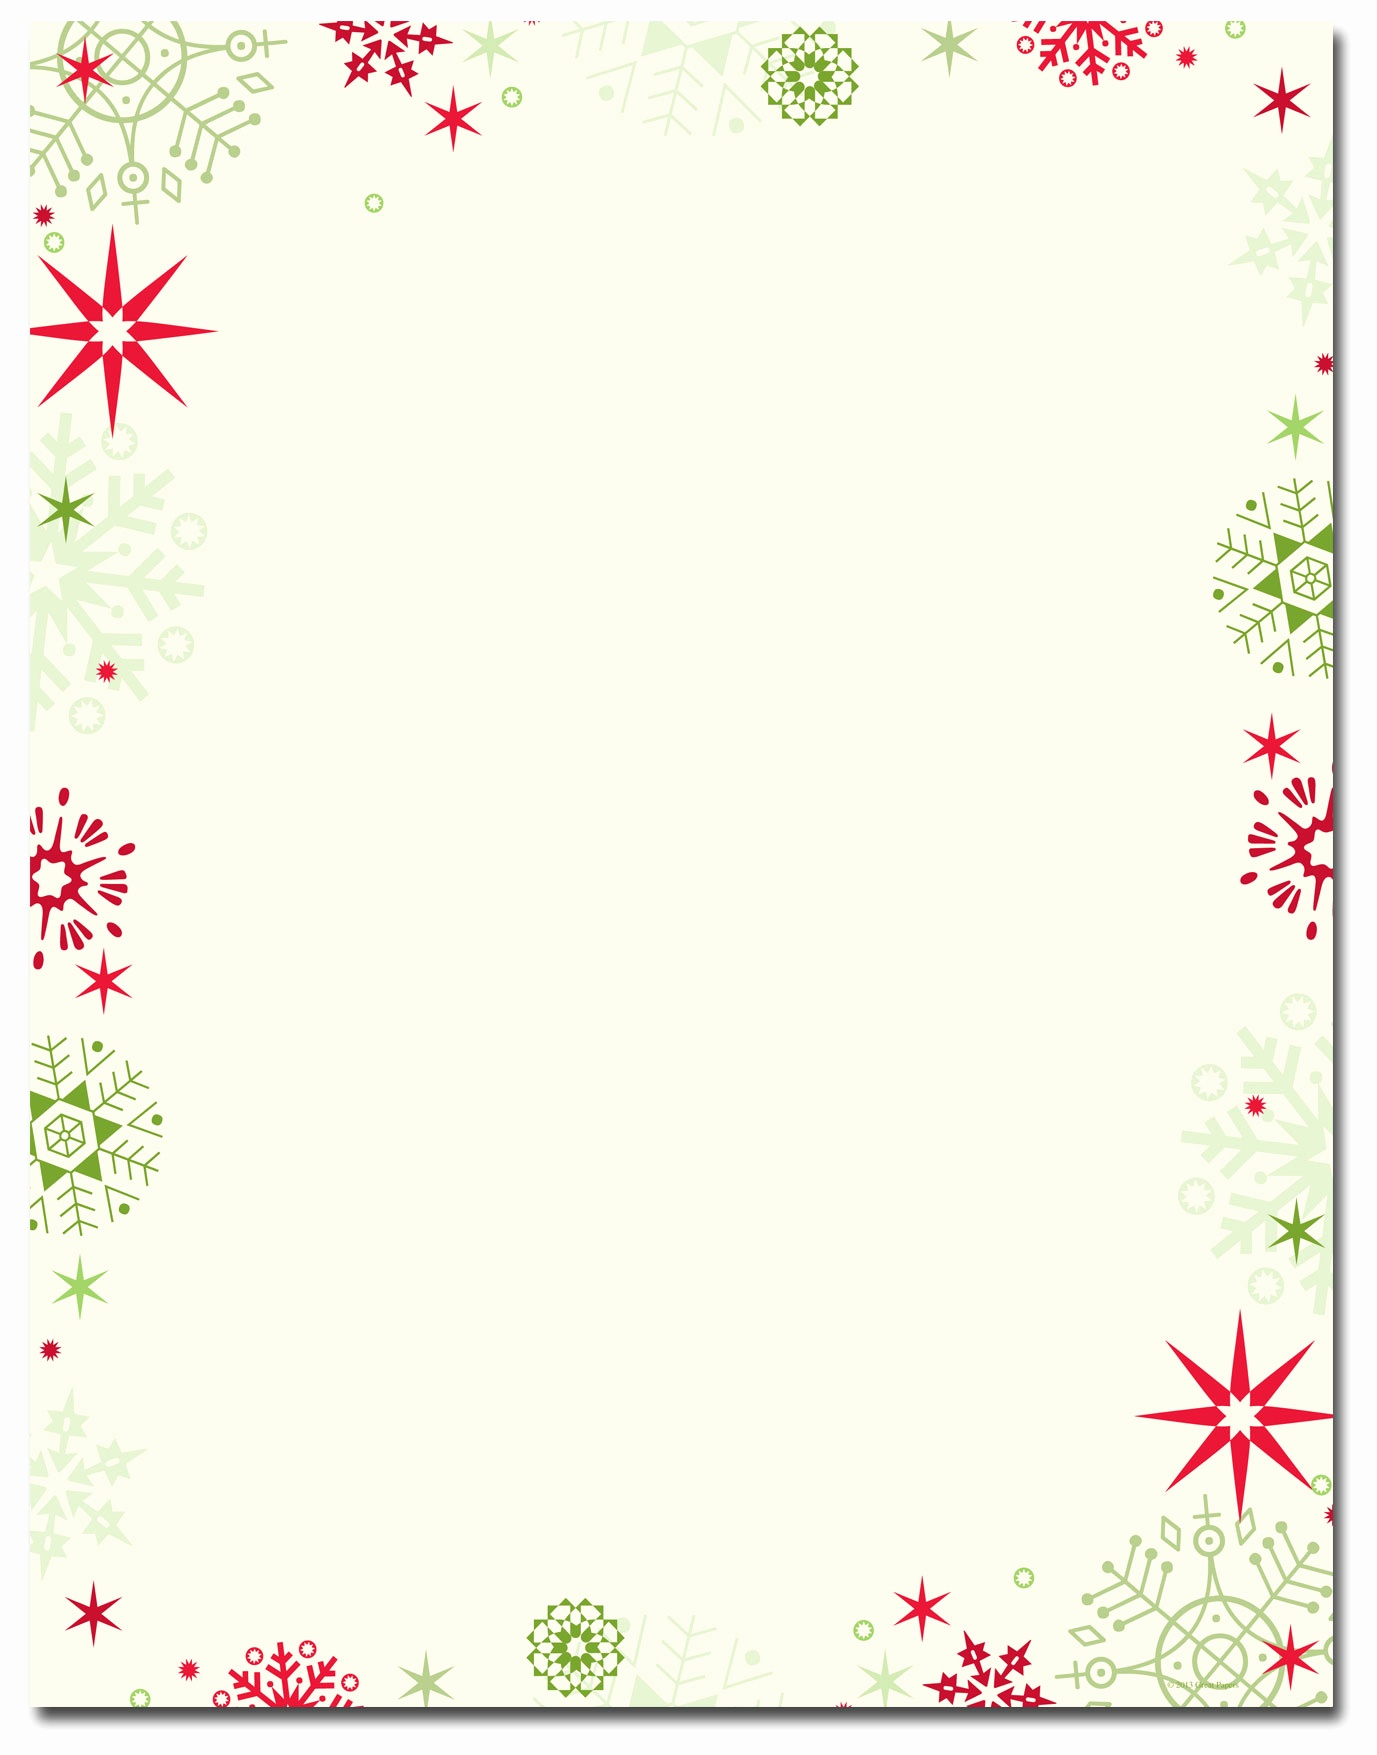 Holiday Letterhead Stationery Holiday Letterhead Free Printable - Free Printable Christmas Border Paper